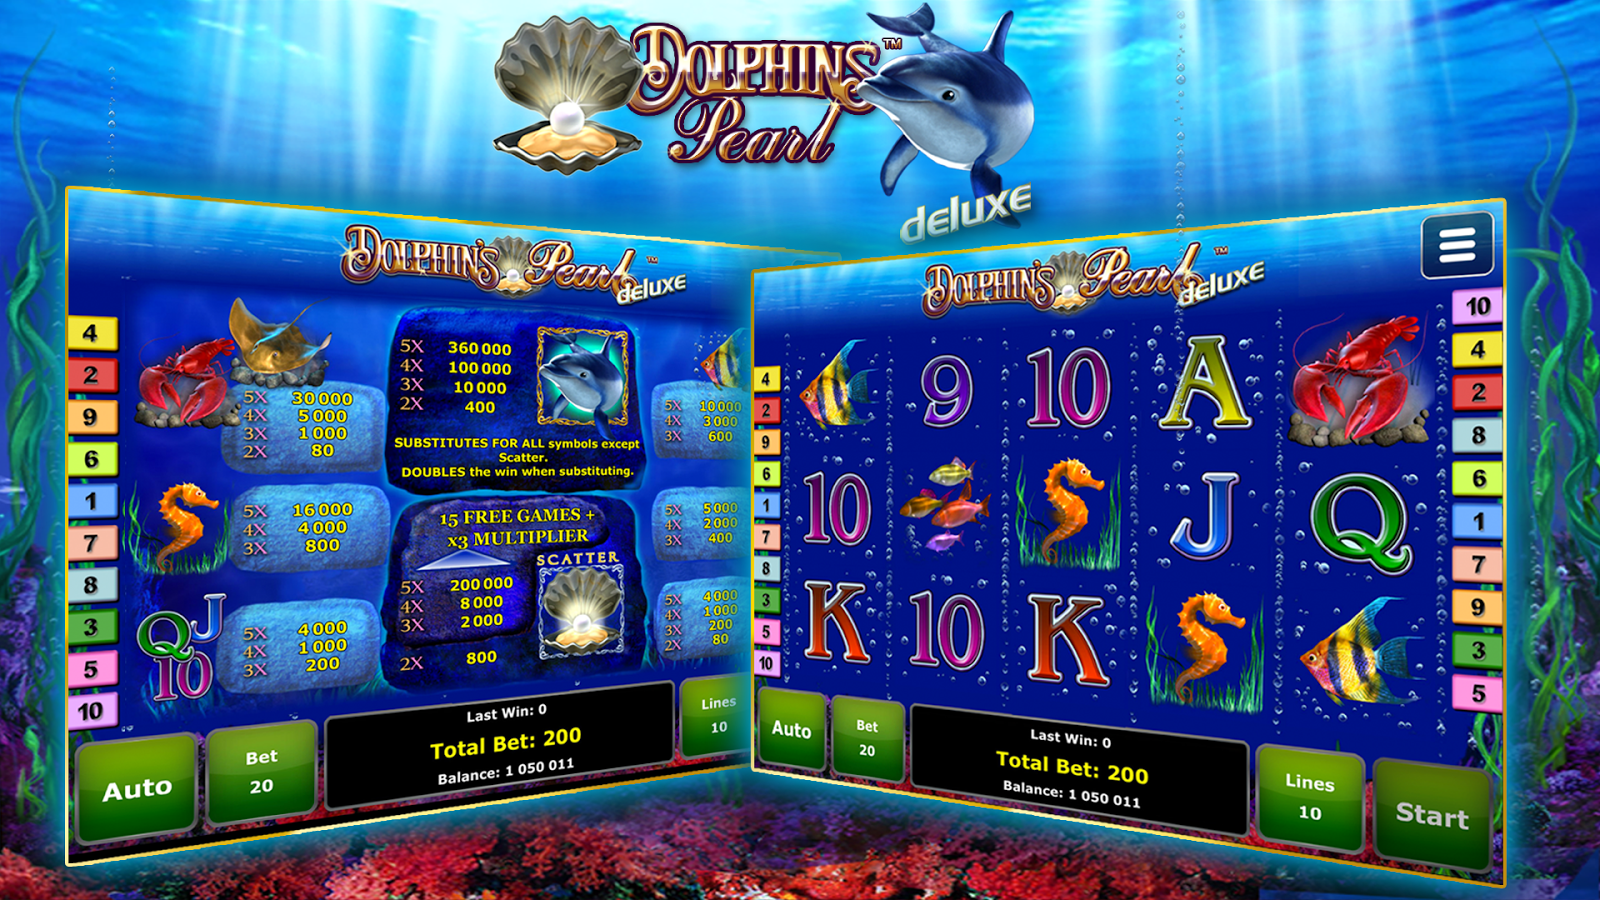 online slot machines for fun lucky lady charm